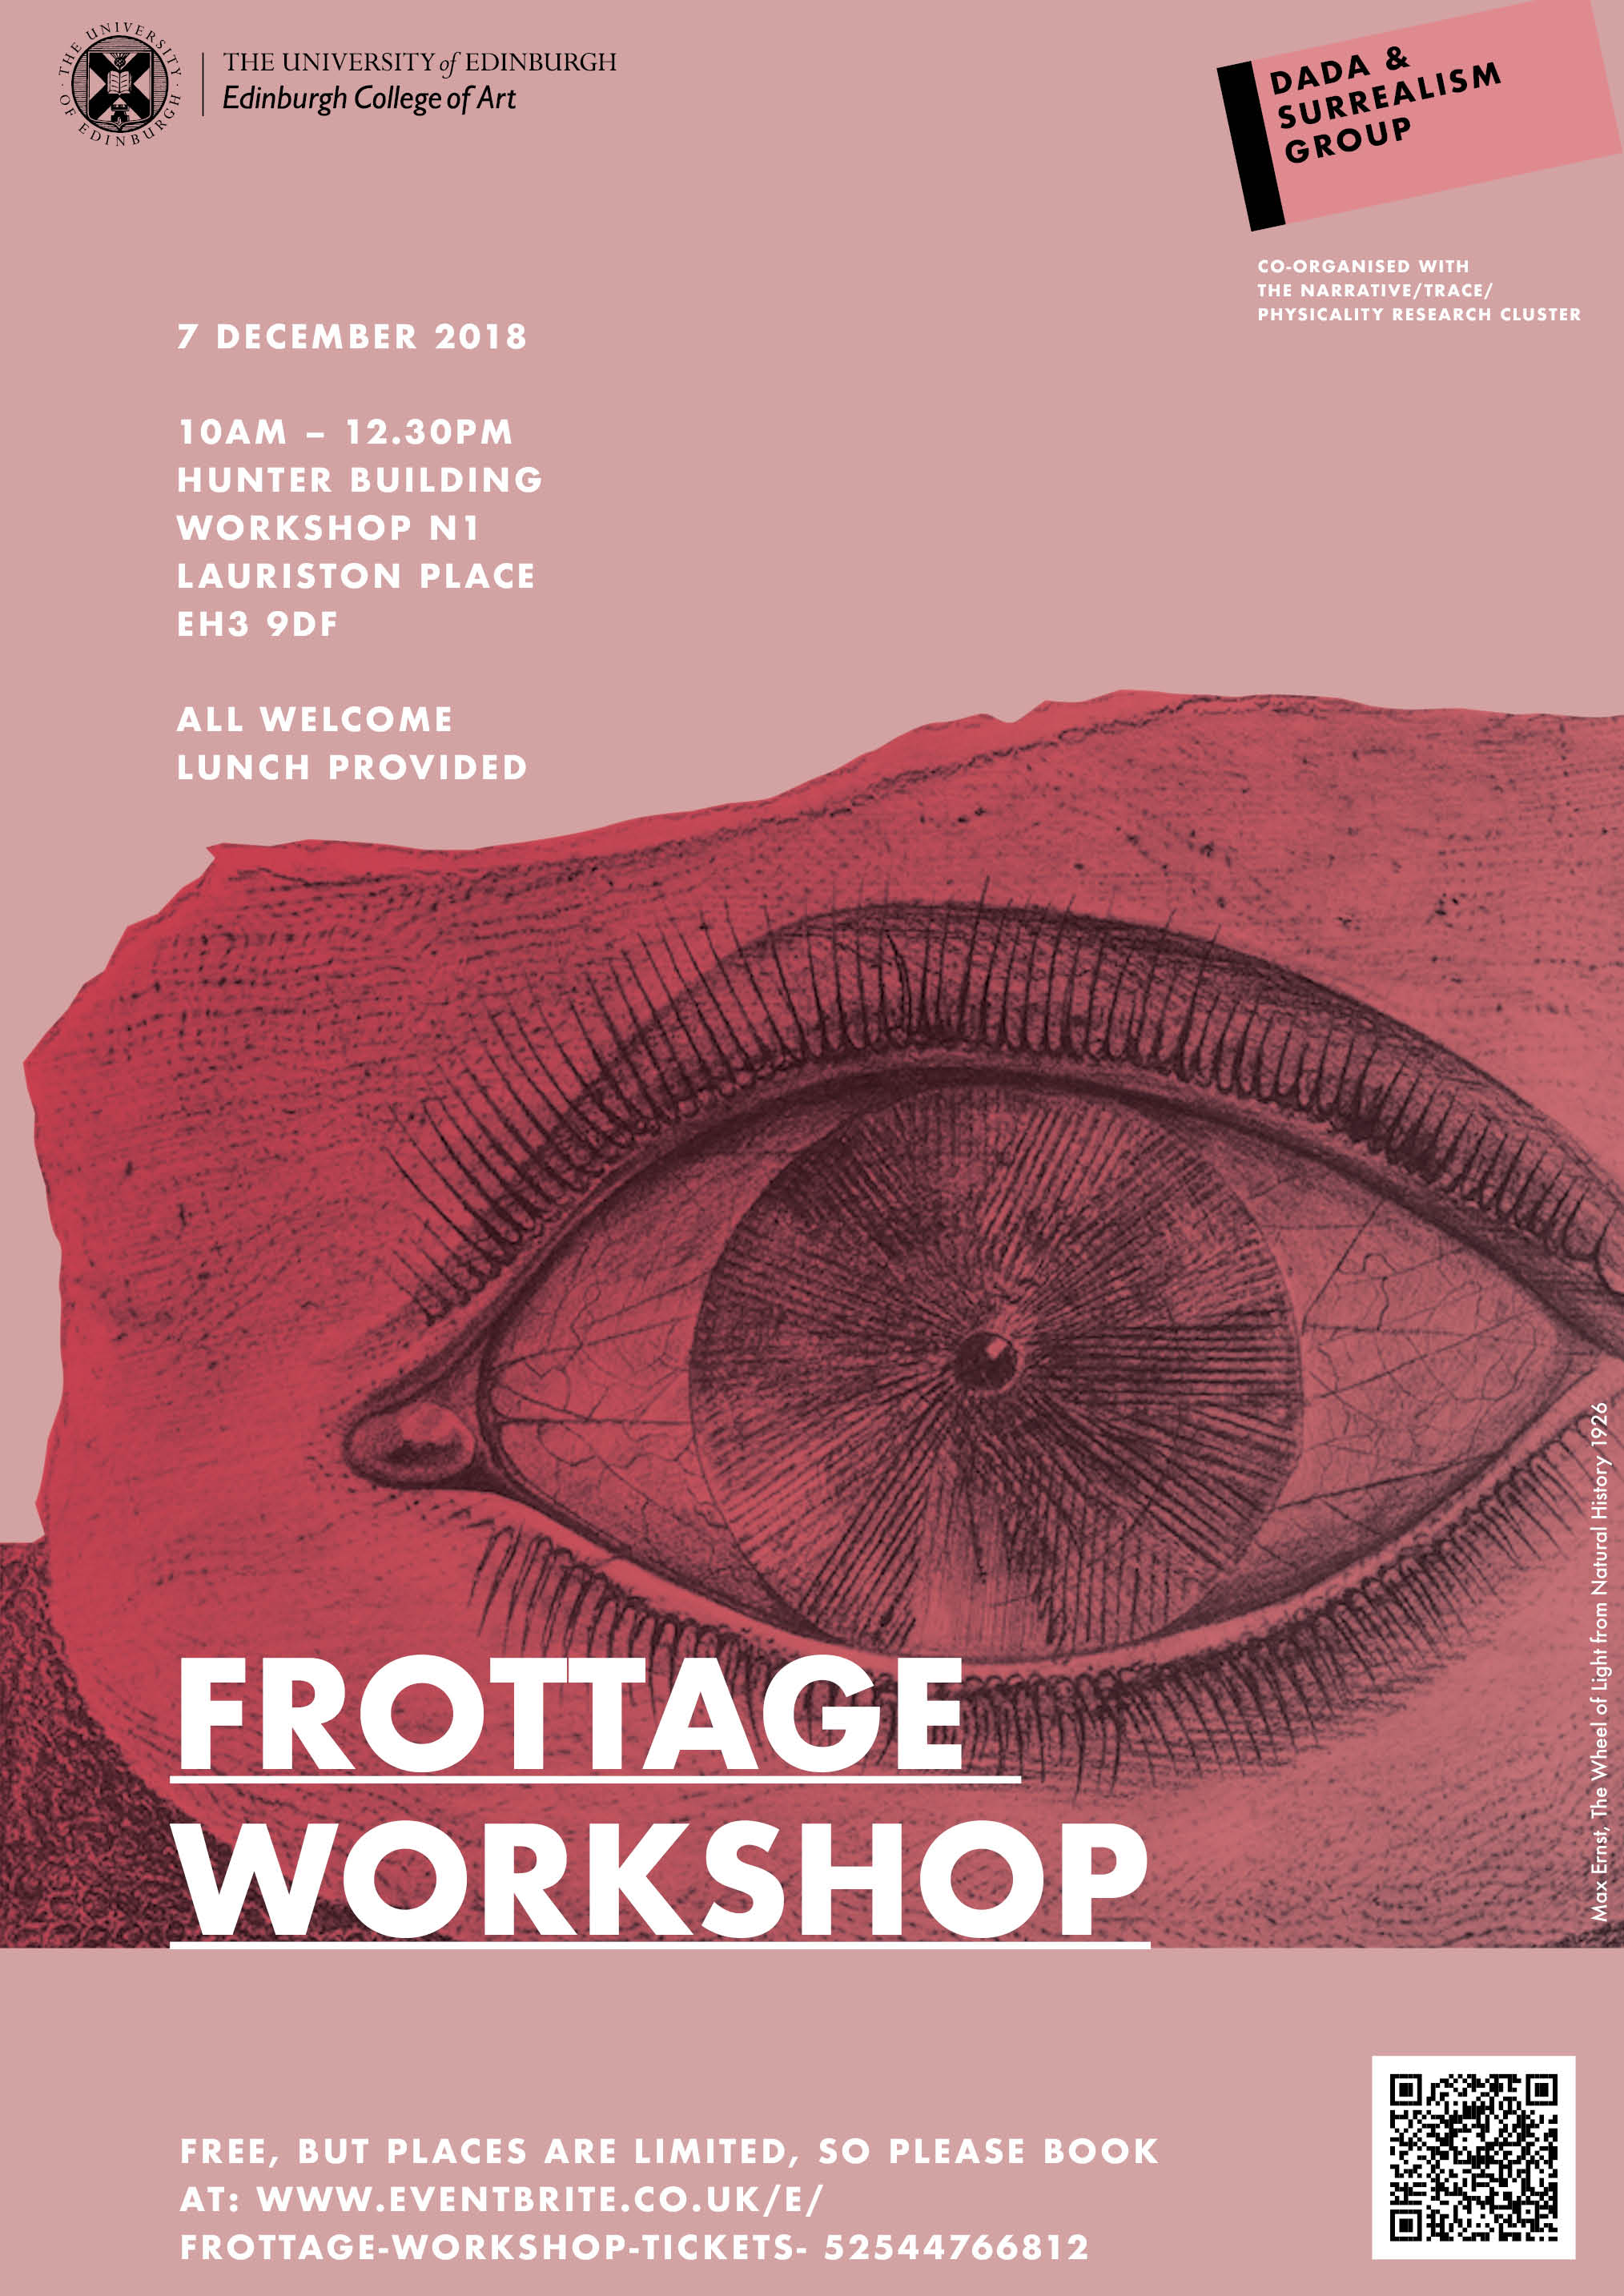 Frottage Workshop